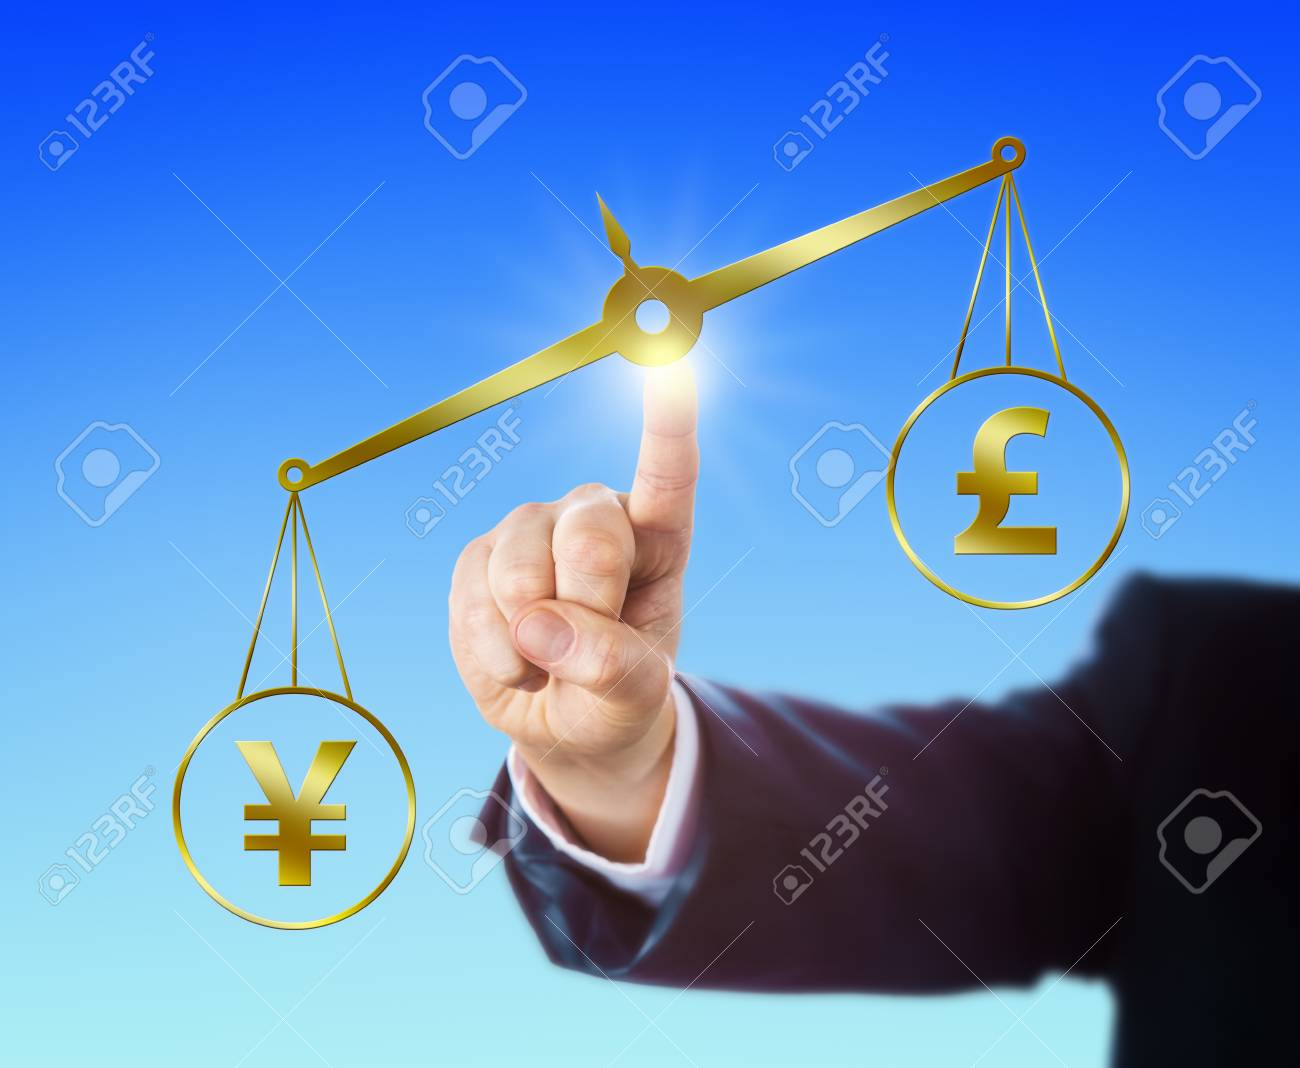 Japanese Yen Symbol Outweighing The British Pound Sterling Sign